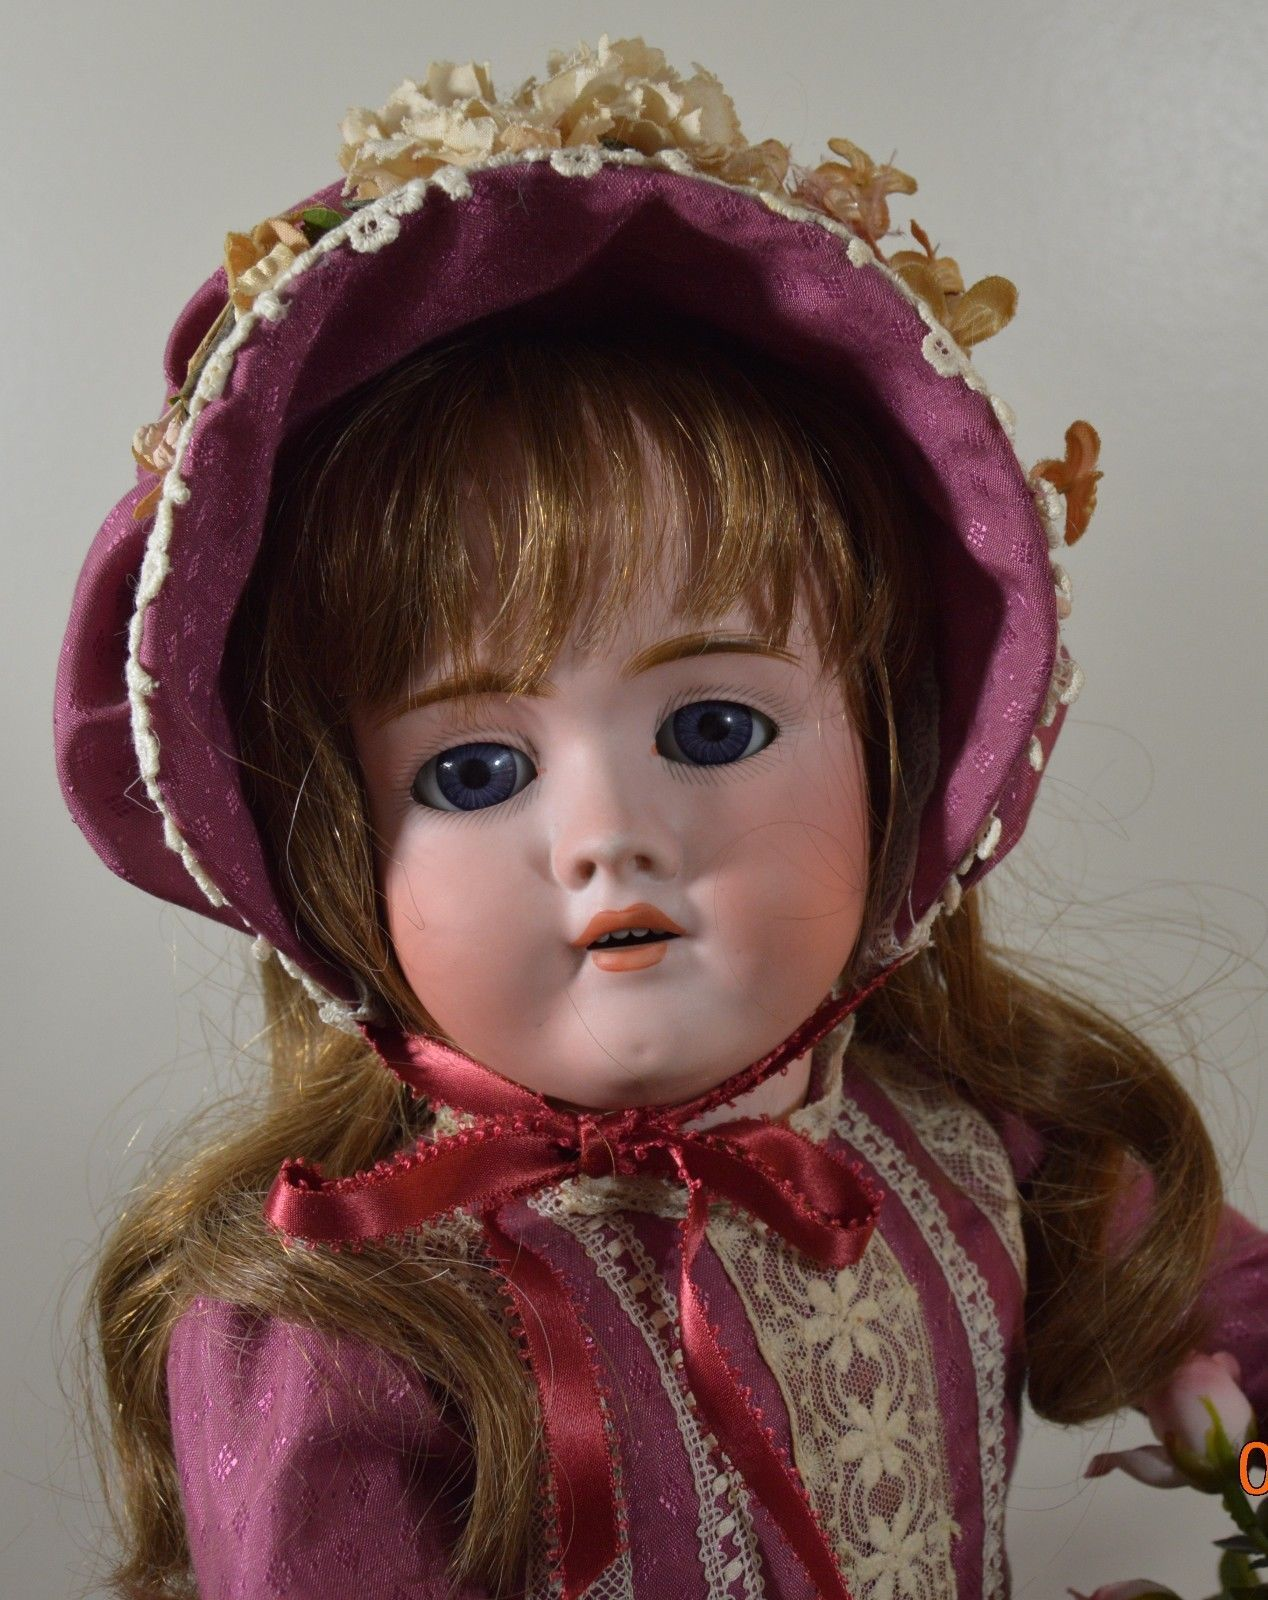 OUTSTANDING Antique German Walkure Bisque Head Doll 24"